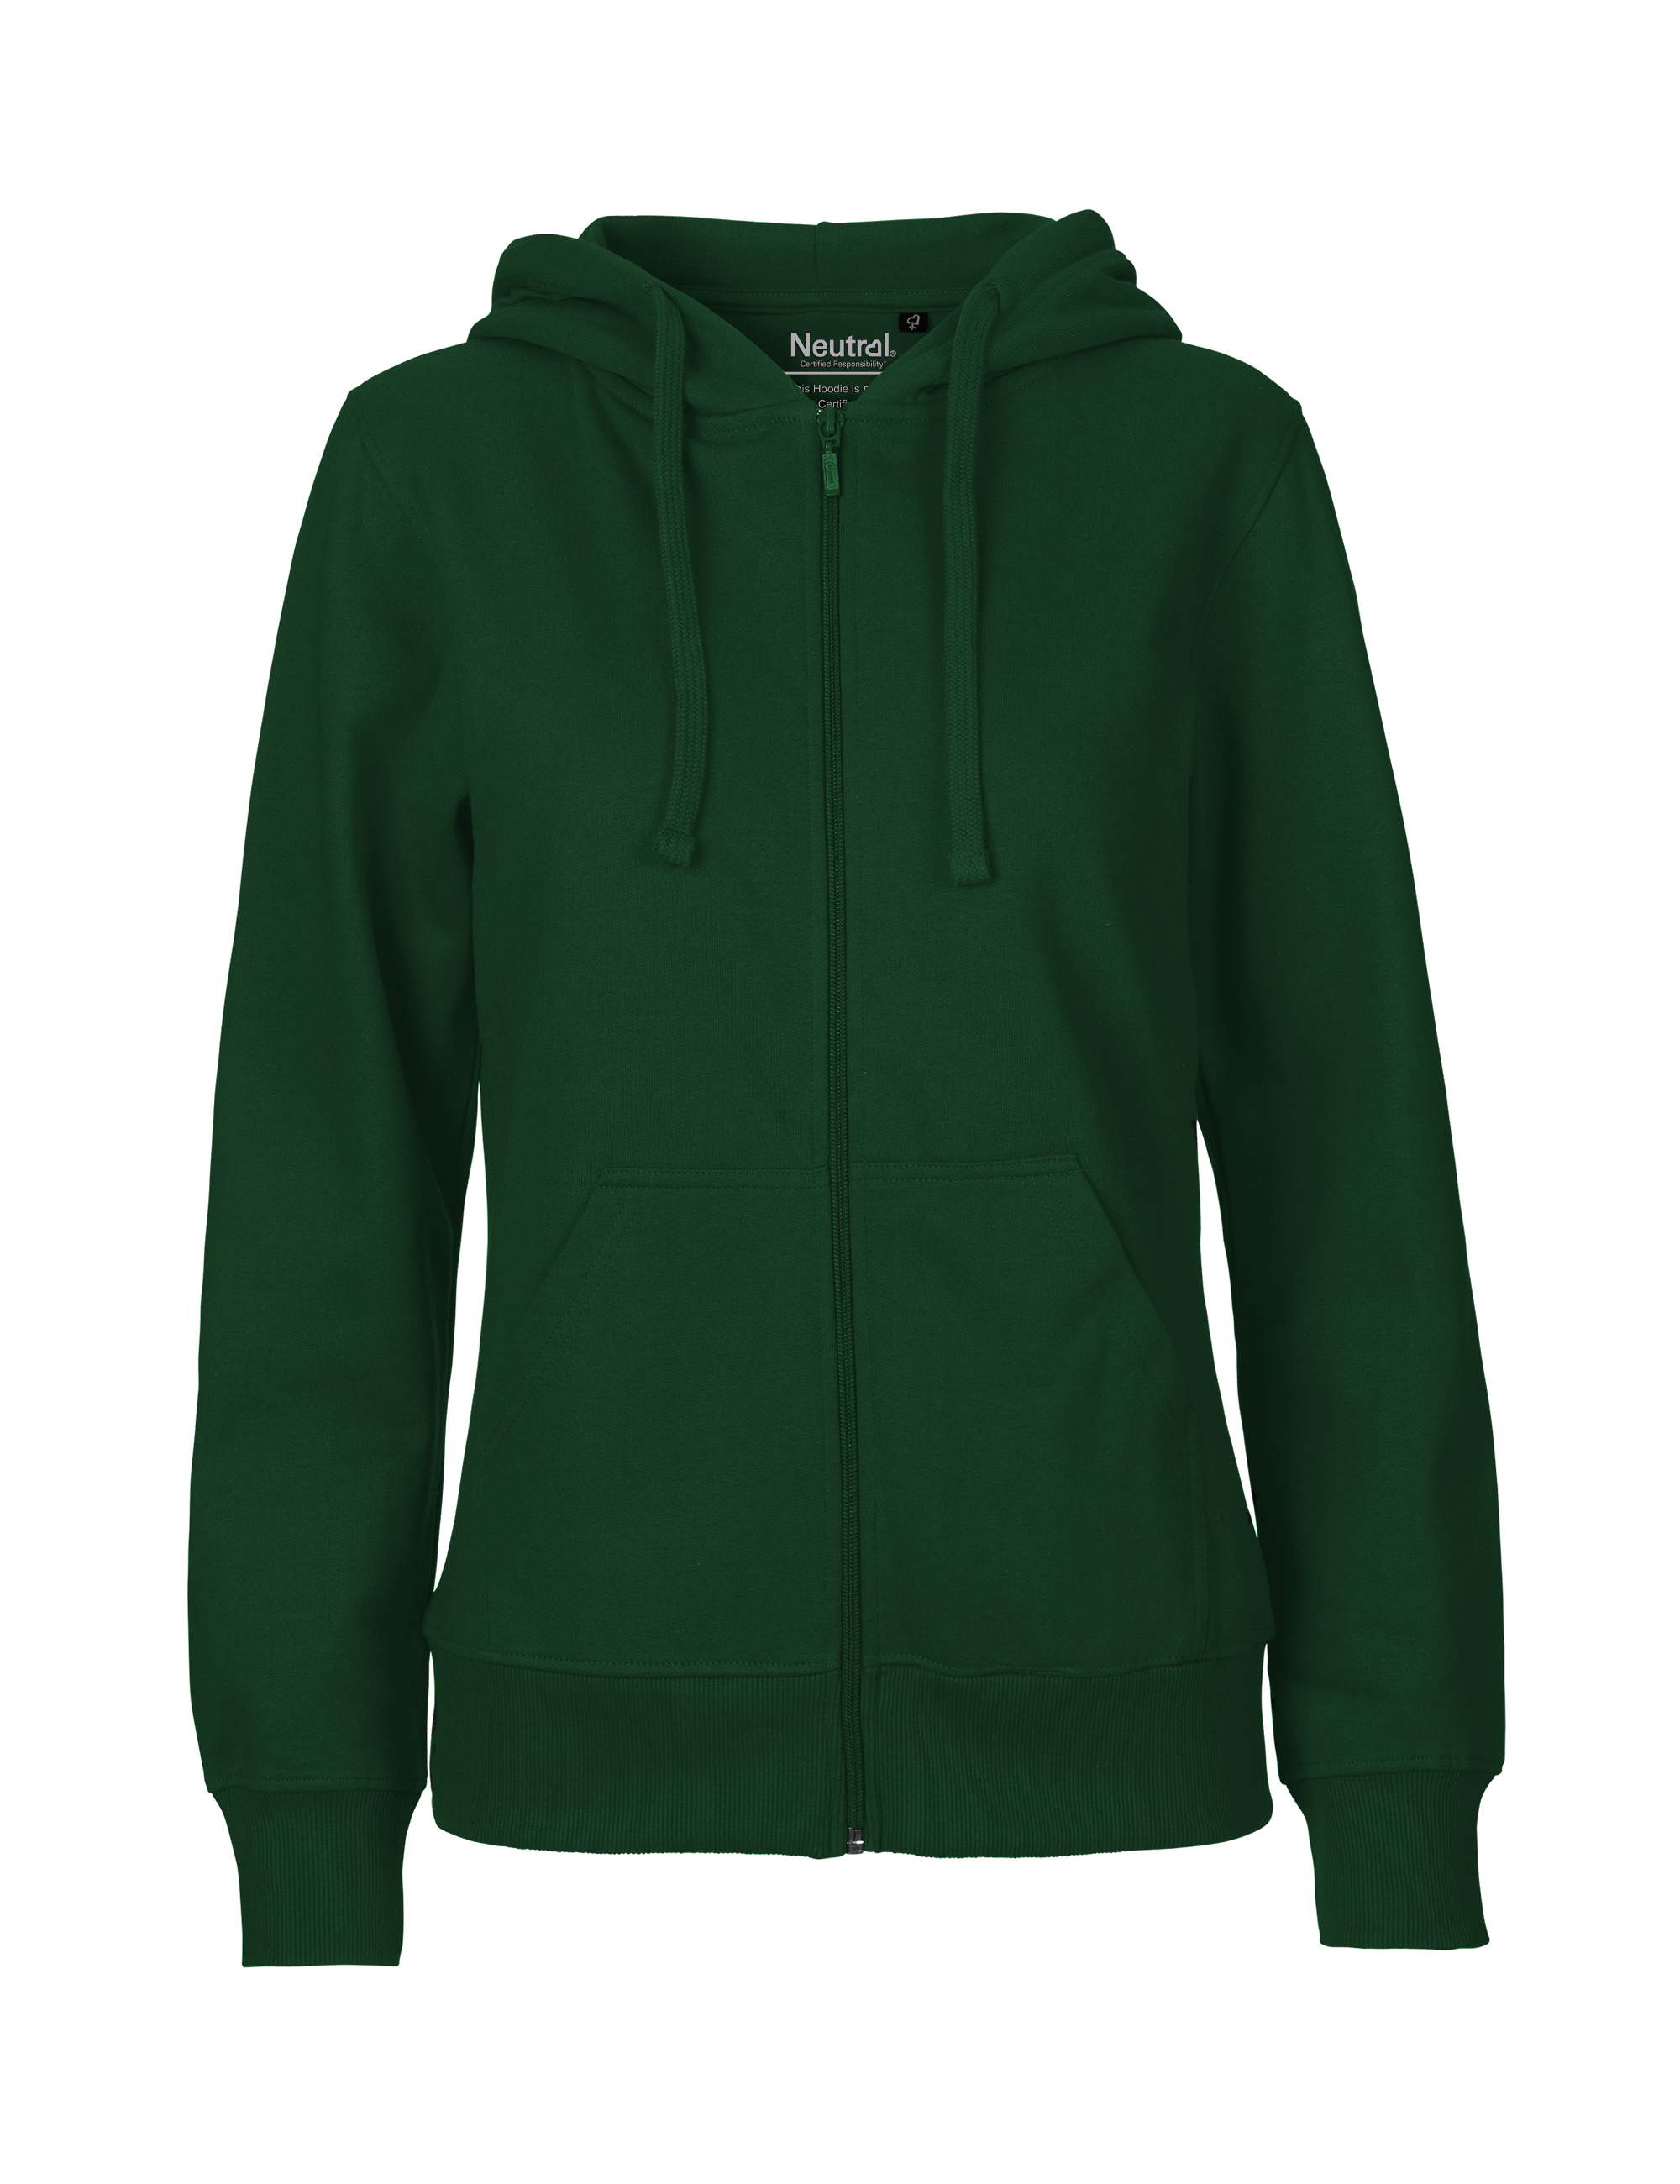 O83301 Ladies Hoodie w. Zip i Bottle Green